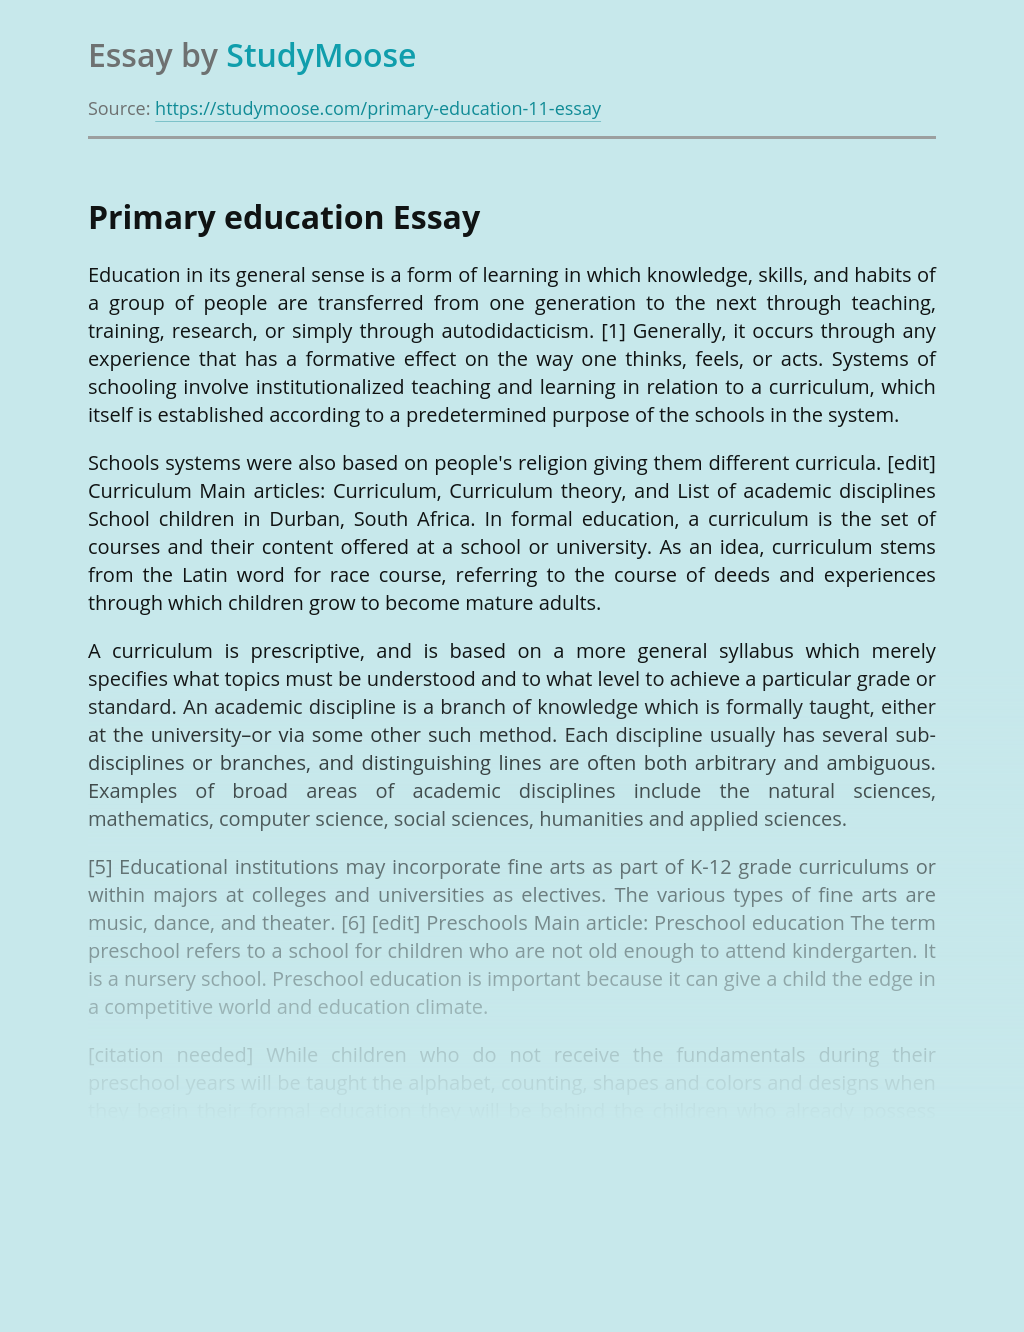 Primary education role in education system